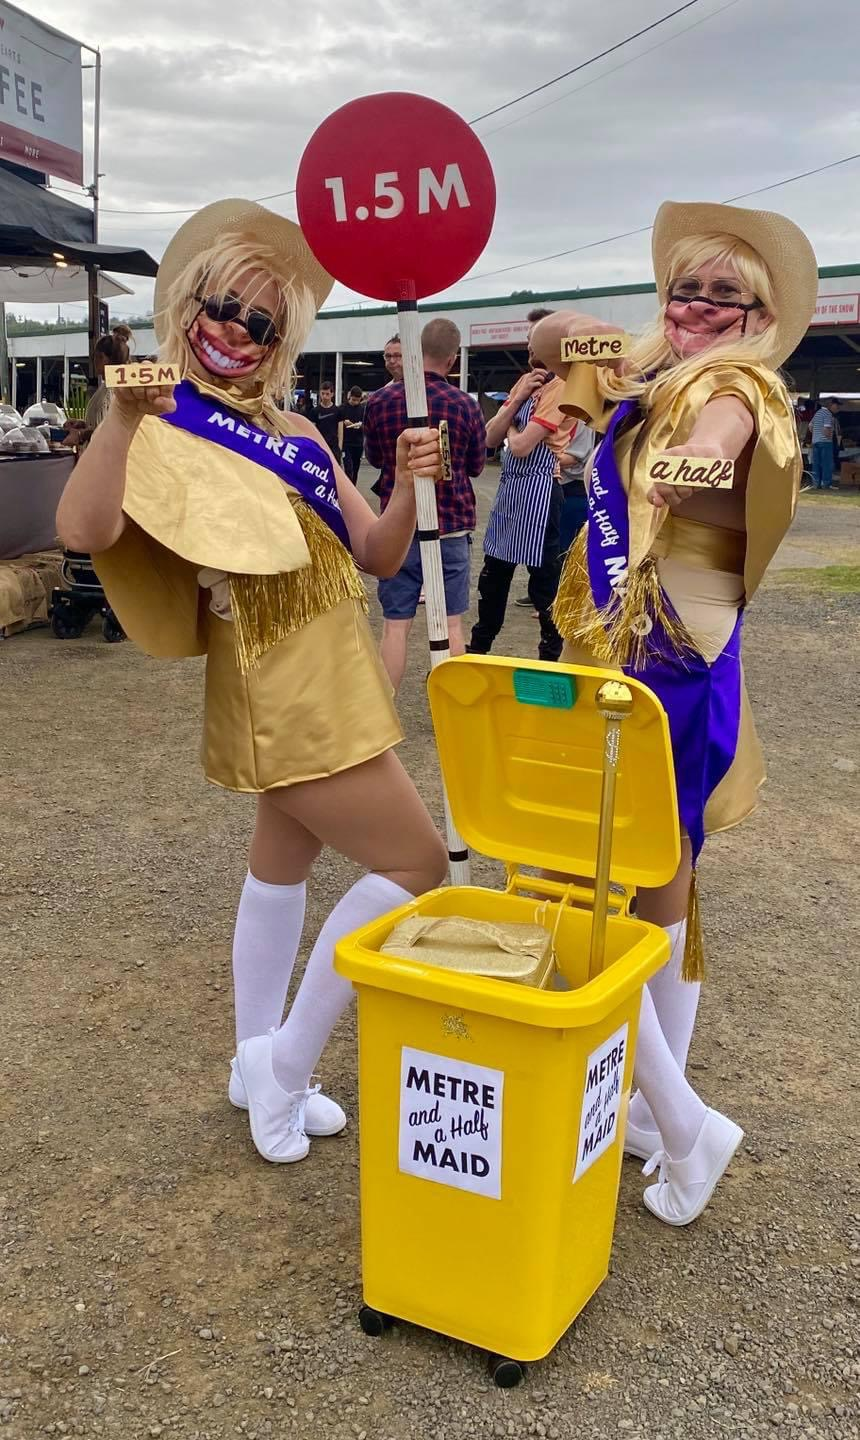 two women dressed in gold glitter outfits holding lollipop signs that say '1.5 m'